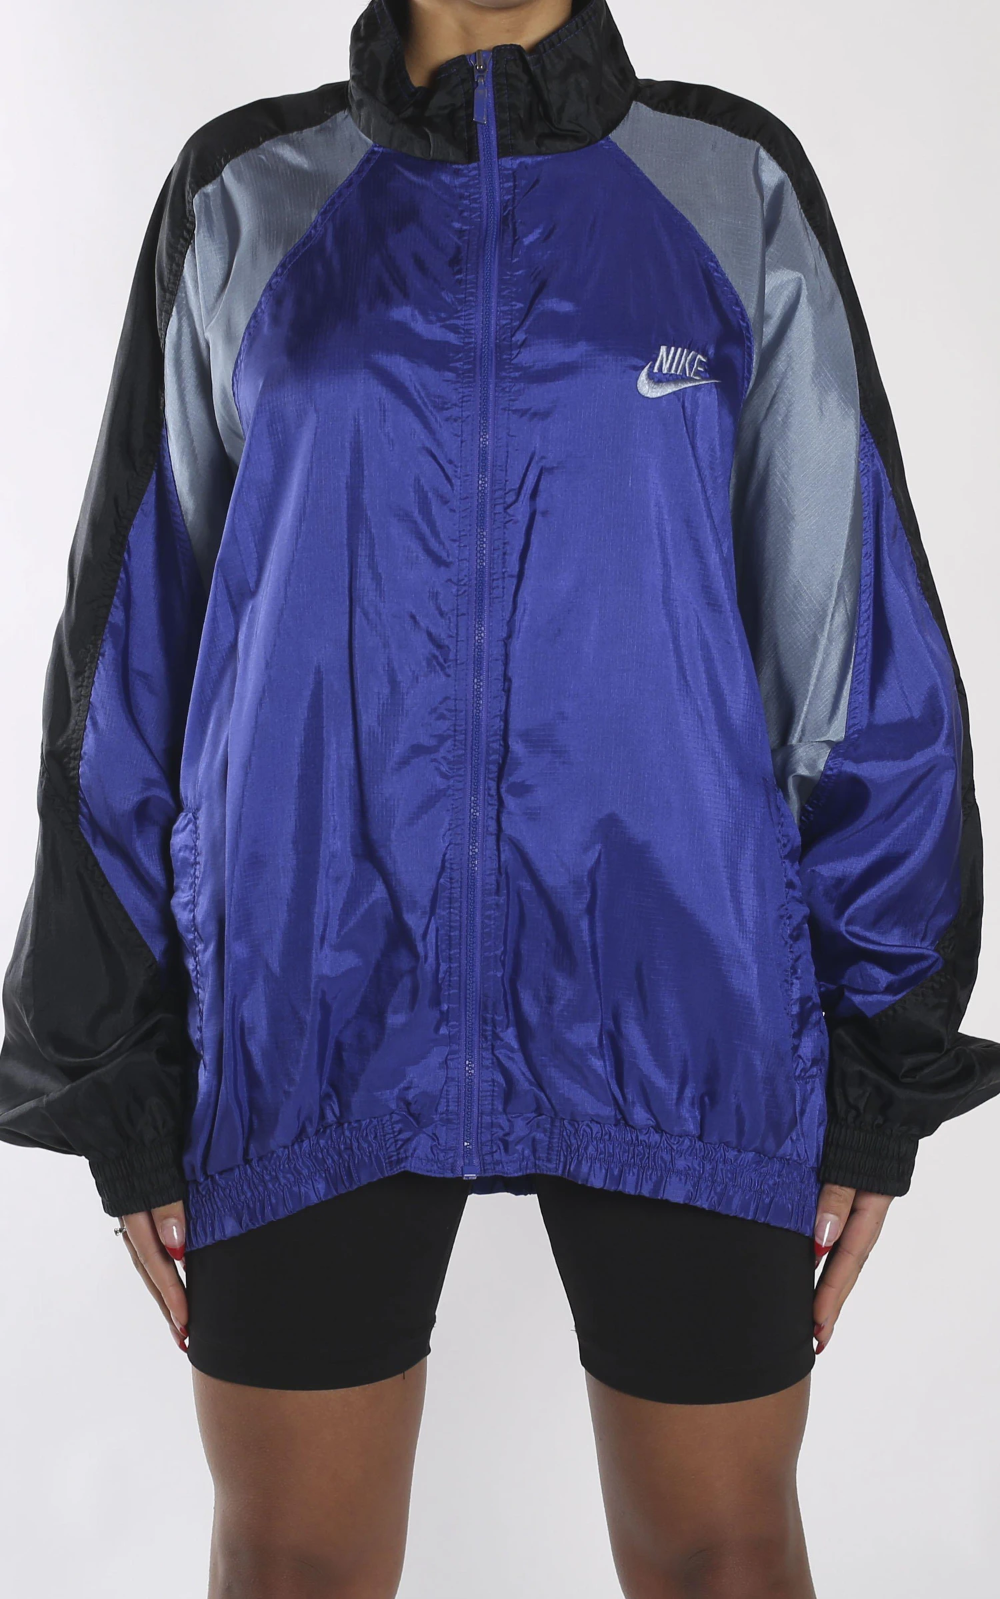 Crudo cheque capitán  Vintage Nike windbreaker jacketSourced in Canada MeasurementsSize: LPit to  Pit: 25